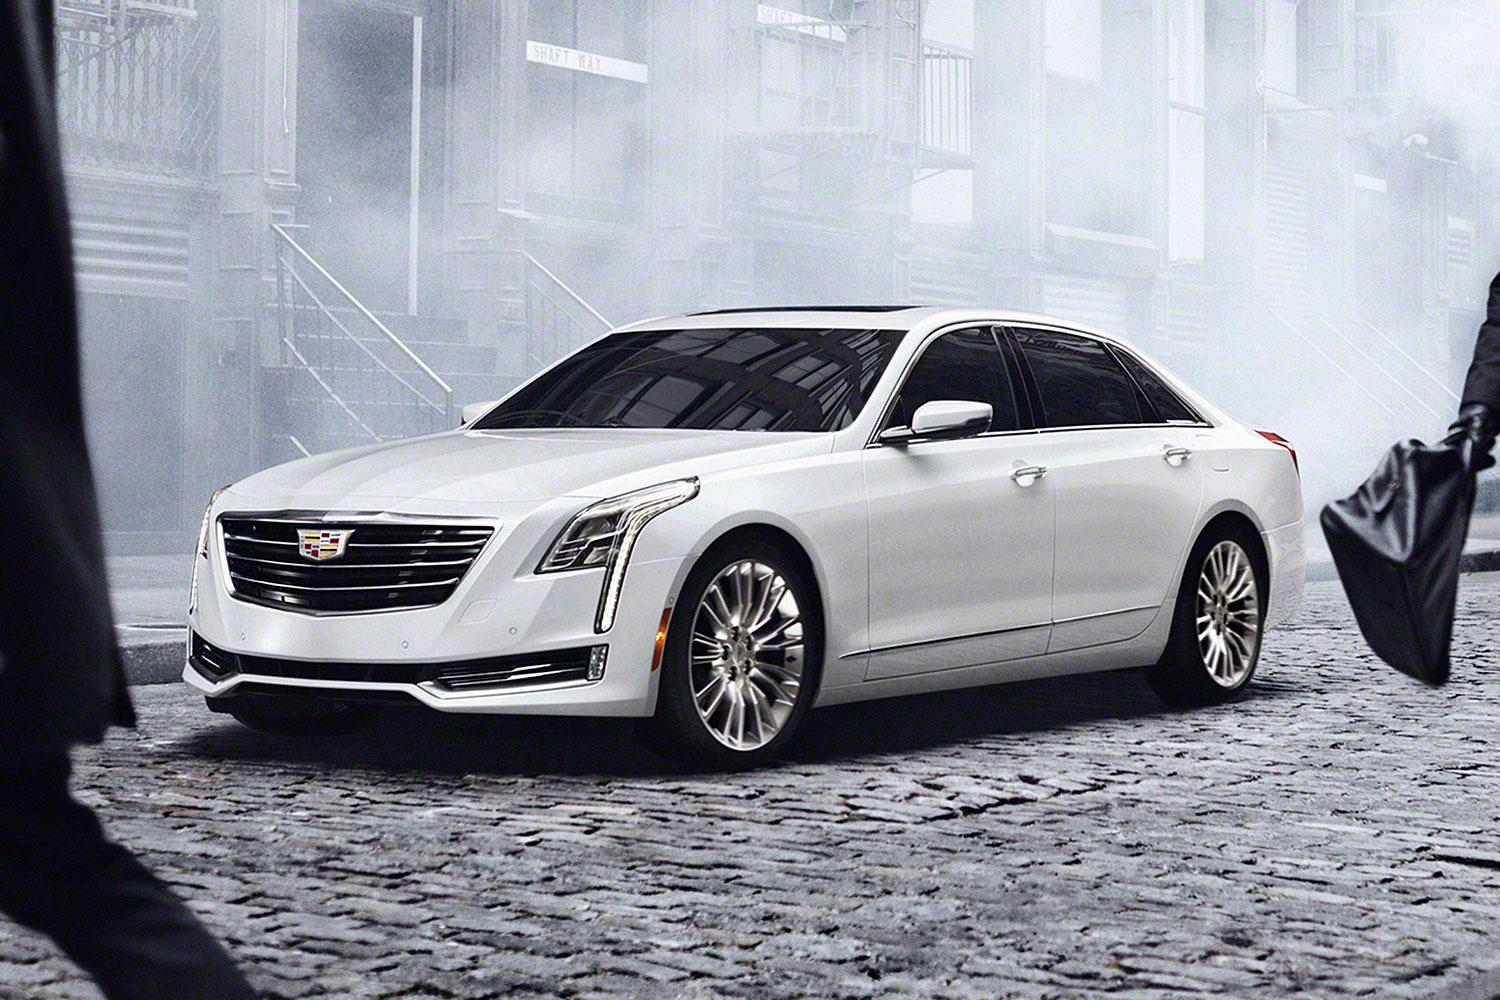 Cadillac S World Challenger Ct8 Flagship Sedan Has Been